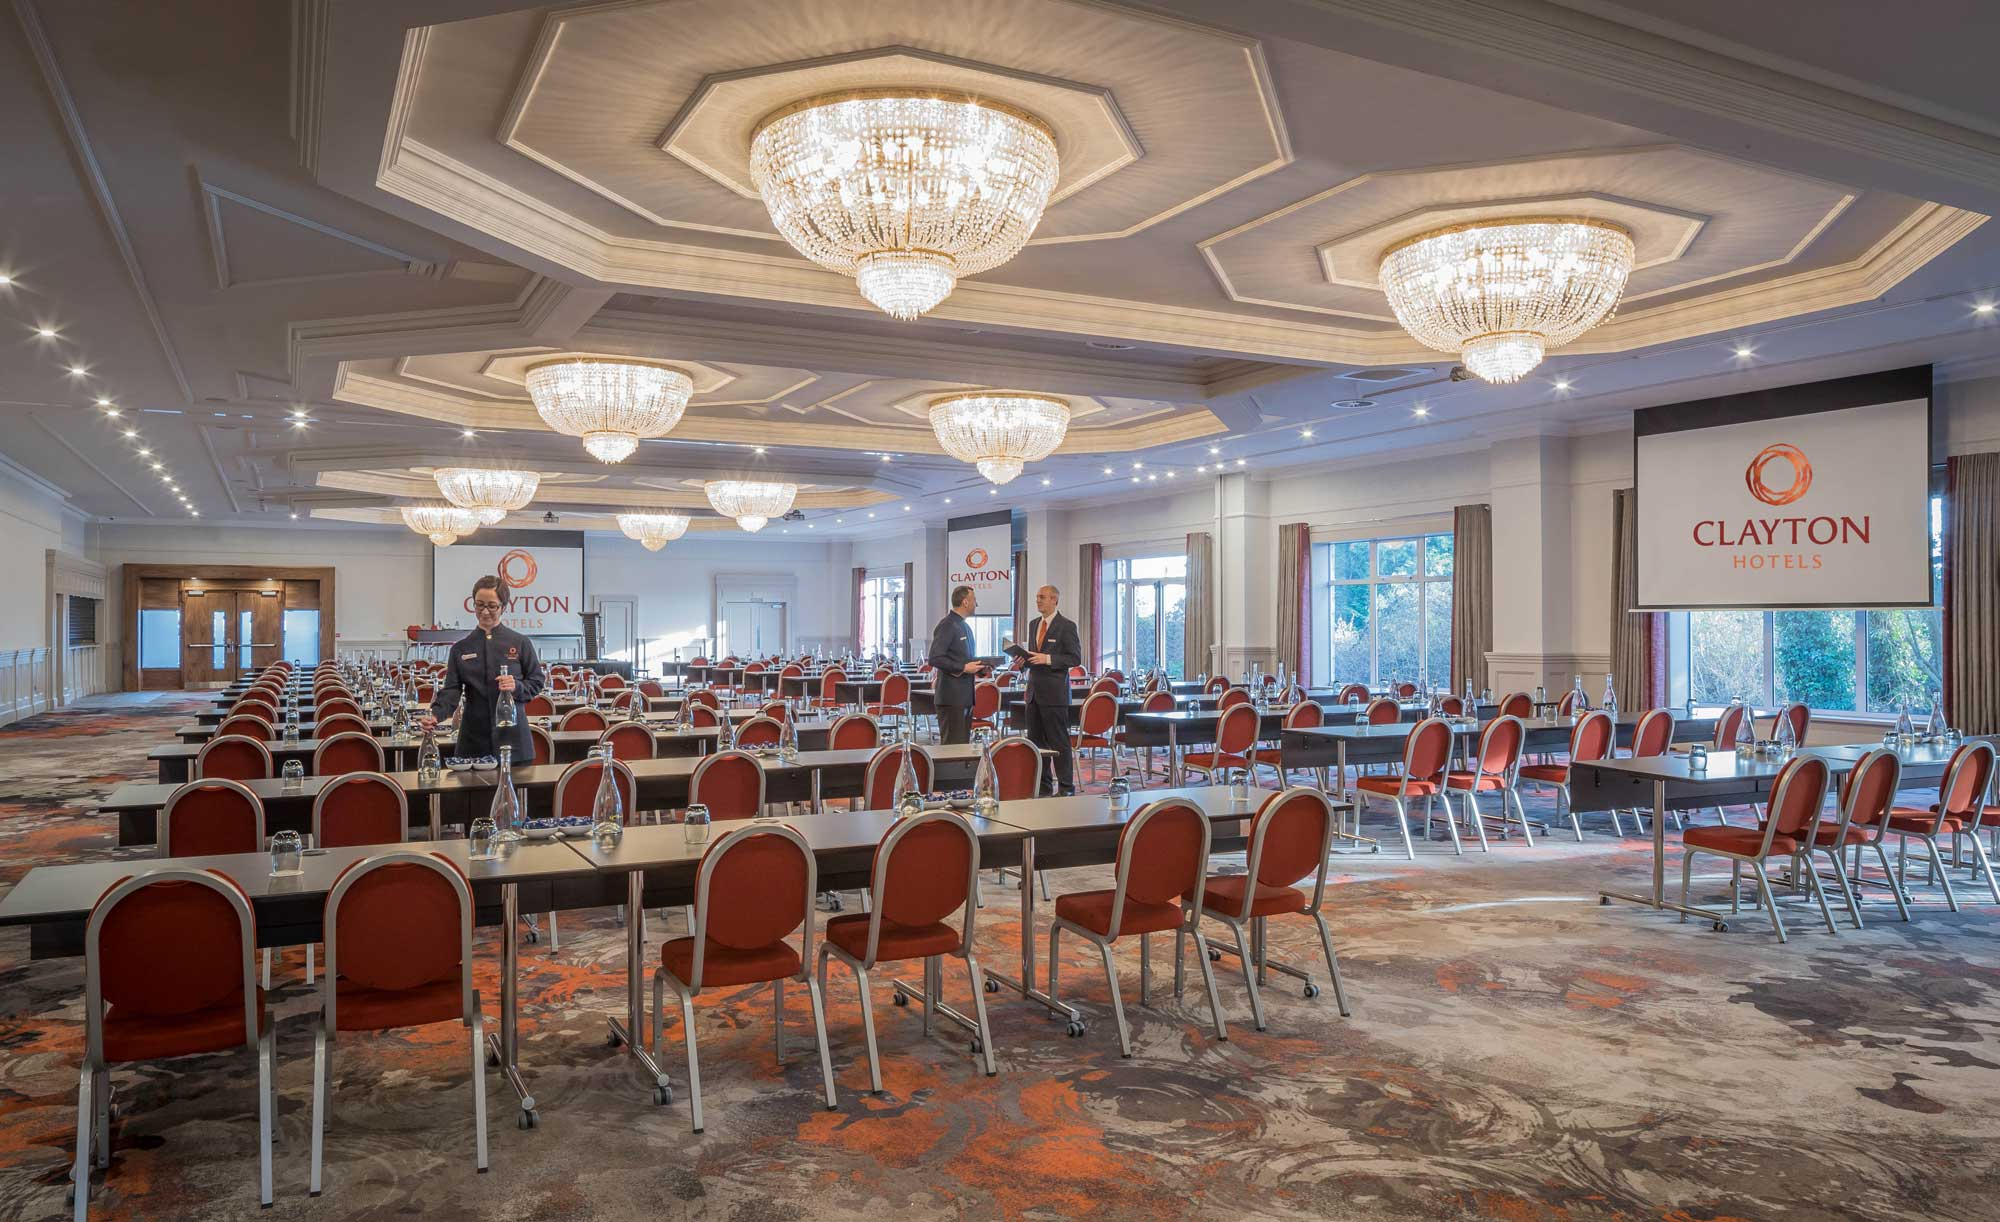 classroom-style-meeting-Clayton-Hotel-Silver-Springs-Cork